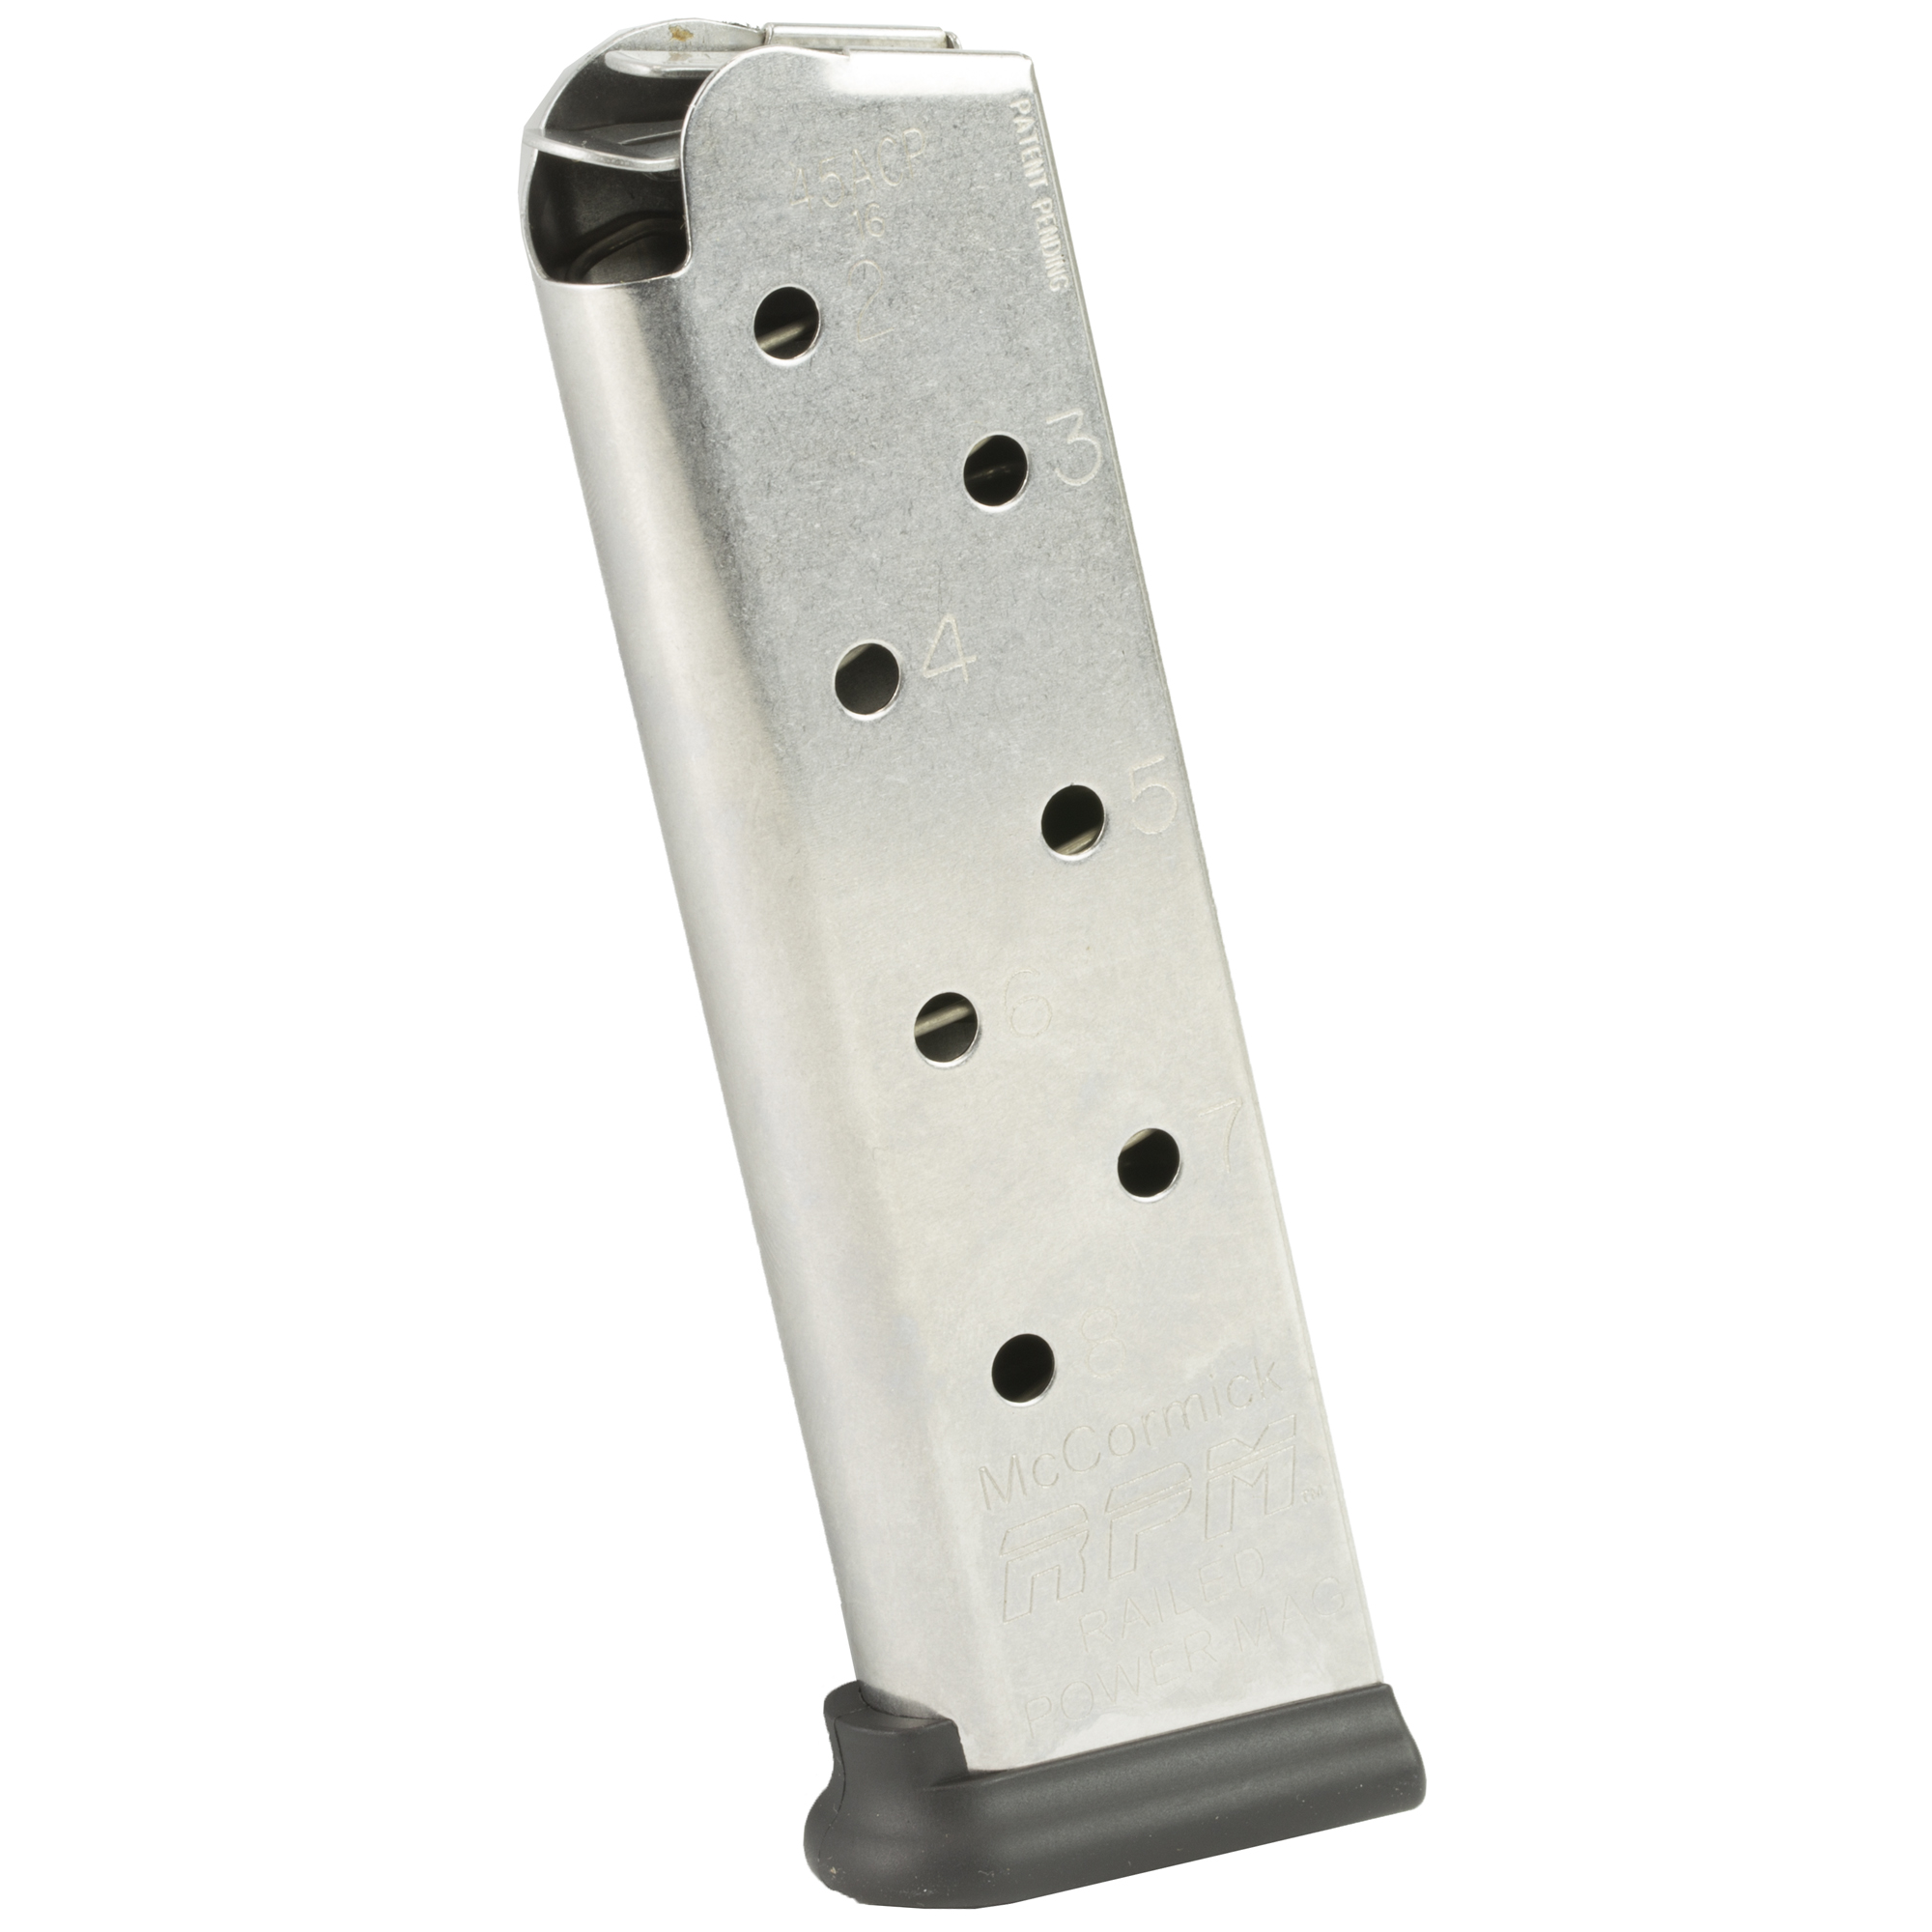 """CMC Products' RPM or Railed Power Mags are the STRONGEST 1911 MAGAZINES EVER MADE! The RPM design is the result of a relentless pursuit of excellence"""" maximizing reliability and durability under all conditions. The dual wall feed rails have revolutionized 1911 magazines. No more jams due to thin"""" warped and bent feed lips! The feed rails built into the RPM are AT LEAST TWICE AS STRONG as any traditional 1911 magazine feed lips and provide the SMOOTHEST FEEDING SURFACE."""